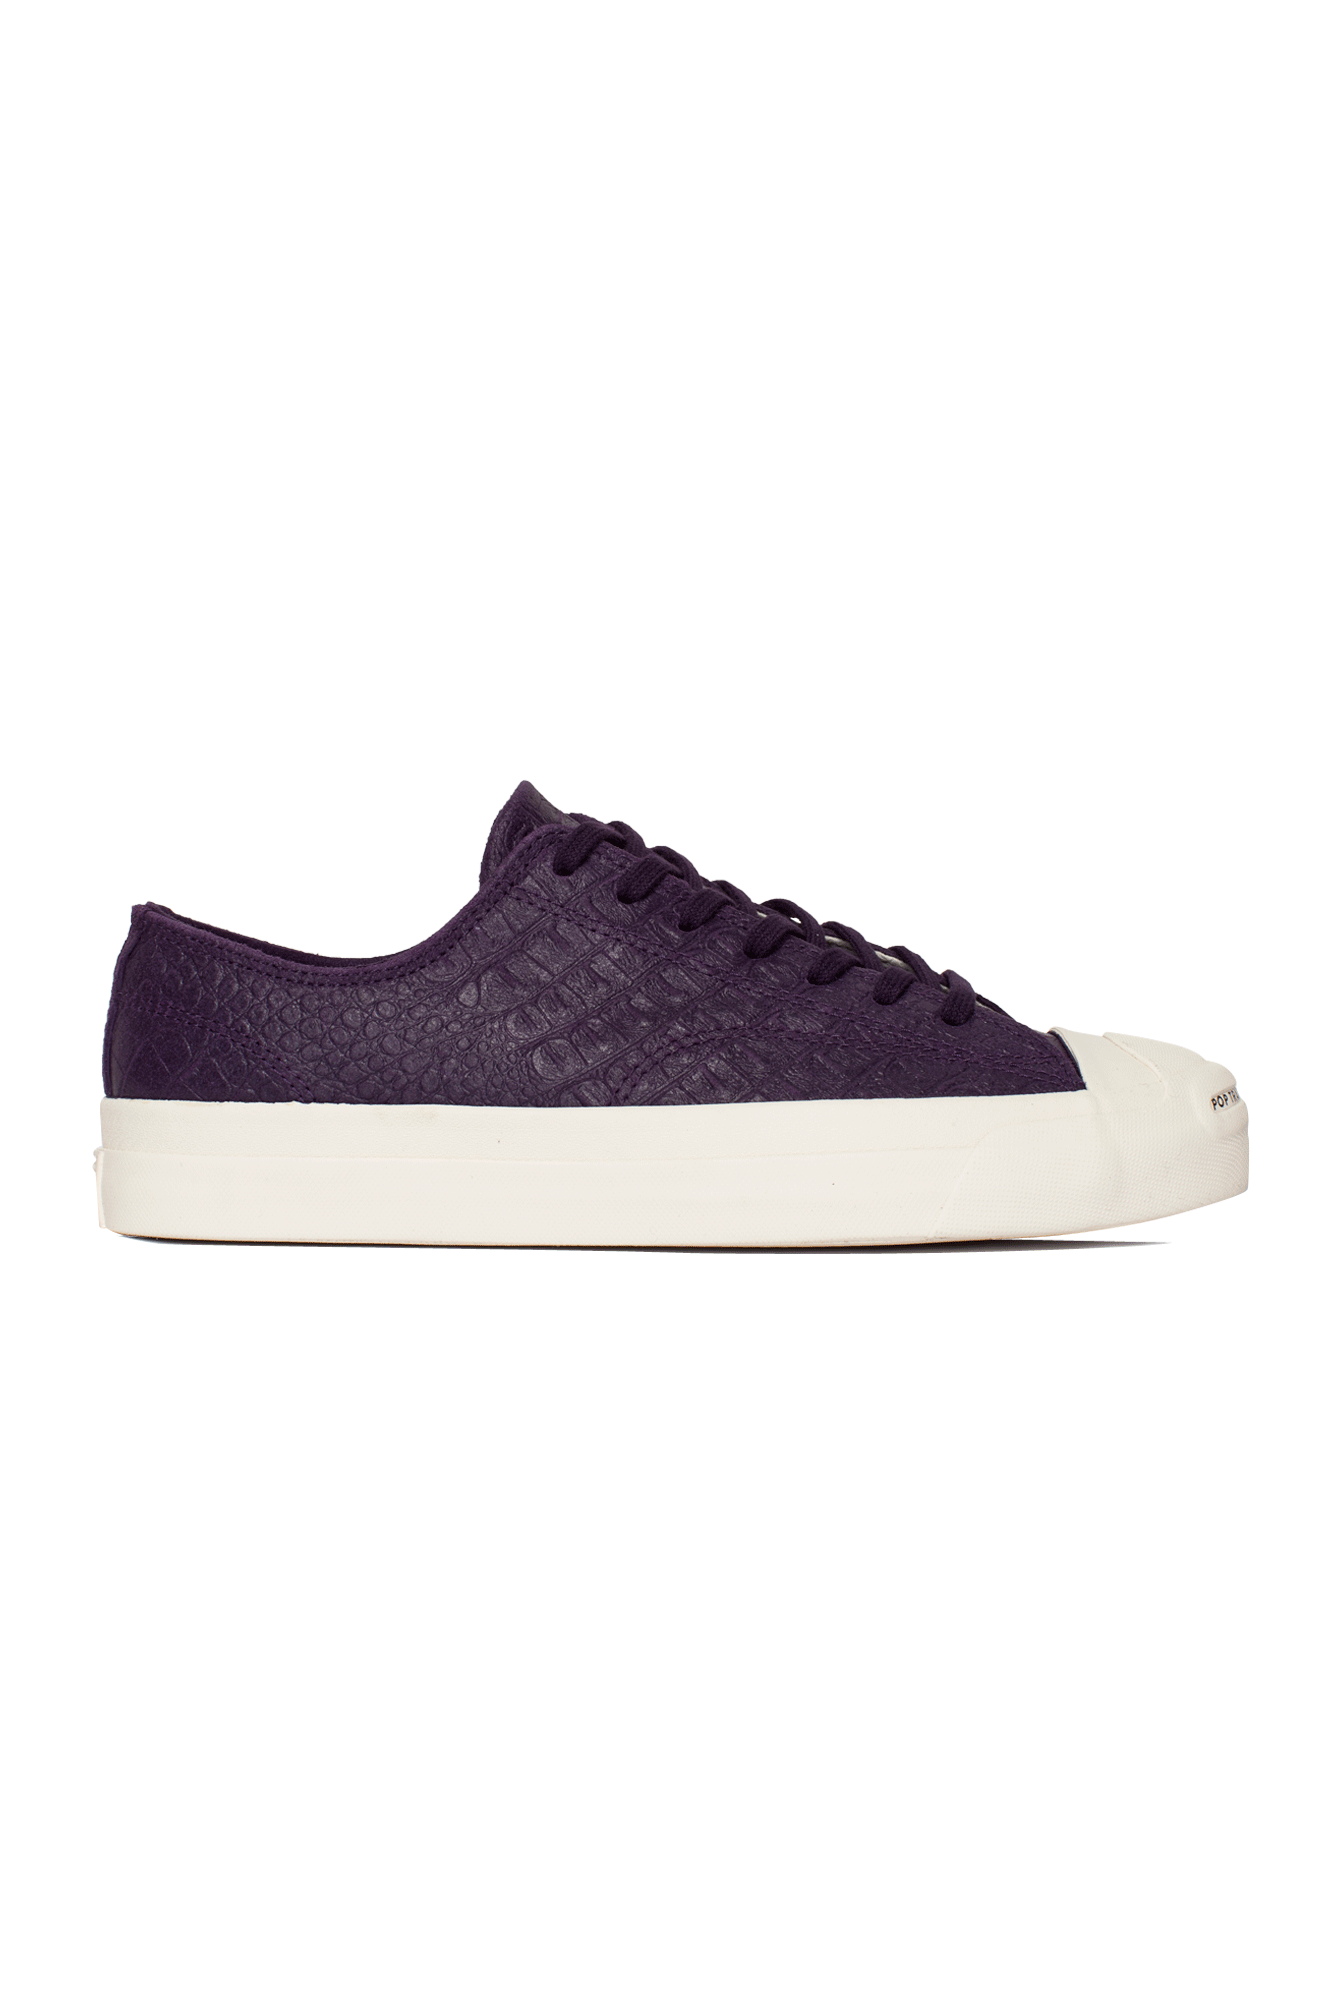 Converse Sneakers Jack Purcell Pro OX x Pop Trading Co Purple 170544C#000#GRNPRP#7,5 - One Block Down